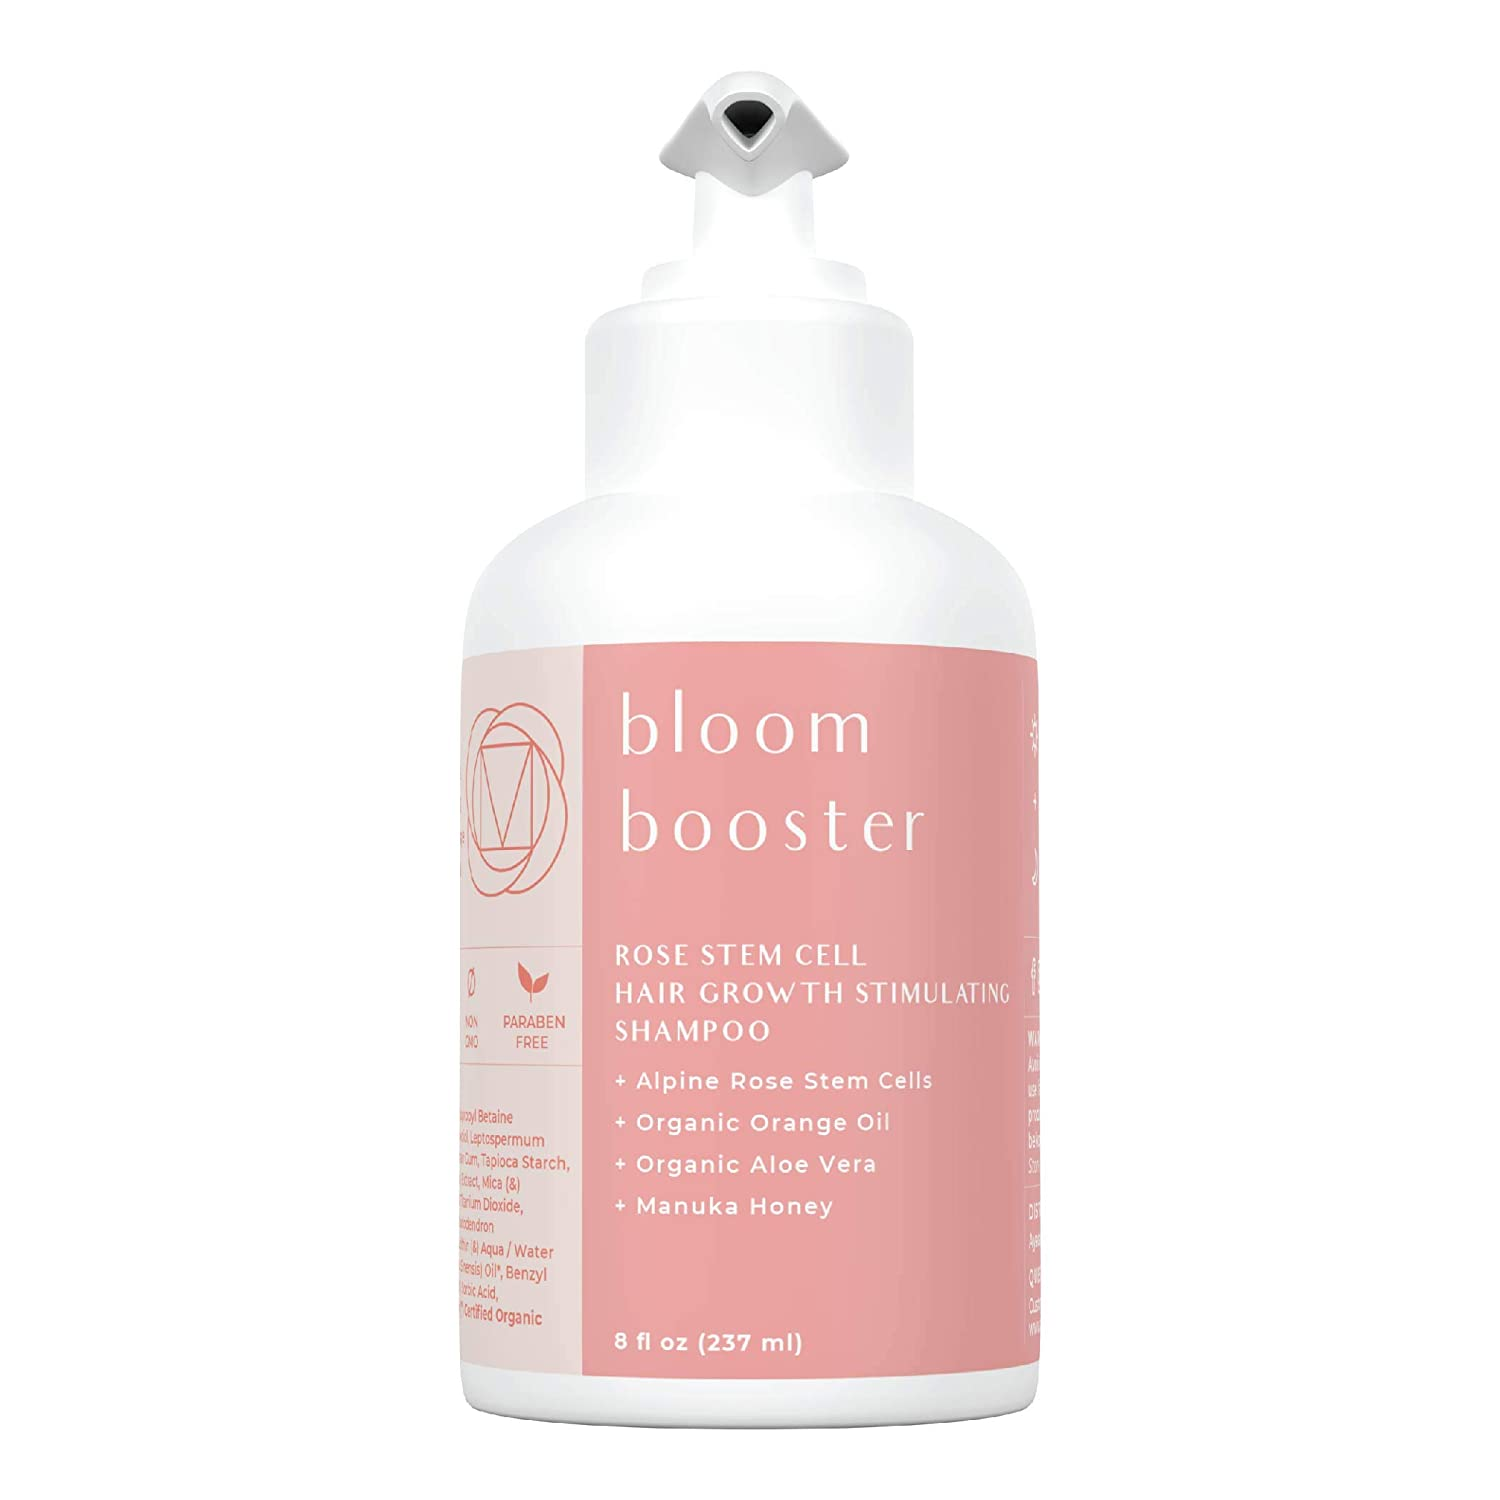 Ayadara Bloom Booster Rose Stem Cell Hair Growth Stimulating Shampoo (8 fl oz) - Organic, Sulfate Free, Natural Hair Growth Shampoo Serum for Hair Loss with Coconut Oil and Aloe Vera for Men and Women